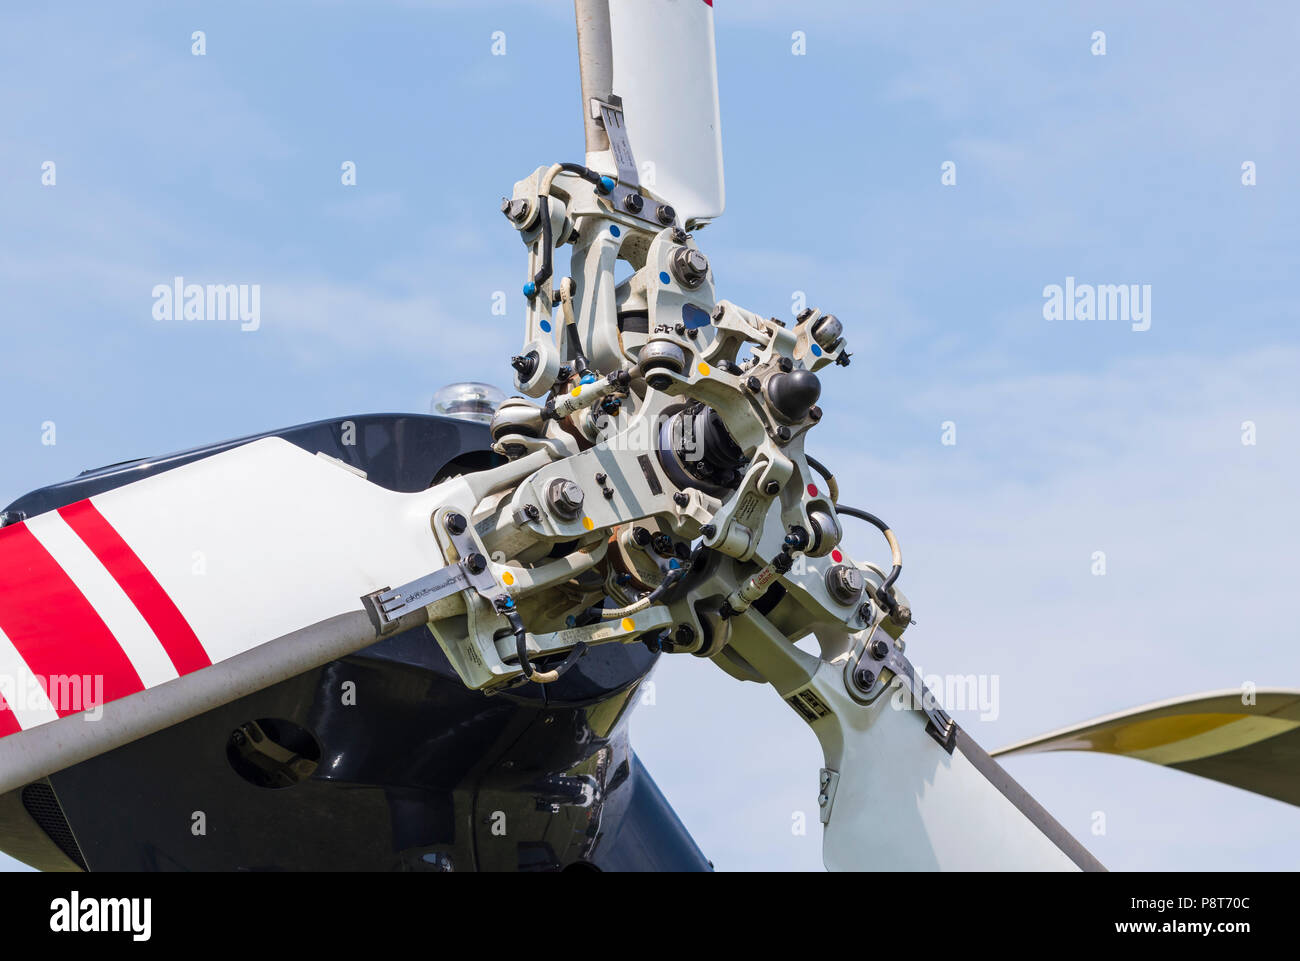 Closeup of a Helicopter Tail Rotor from an Agusta Westland AW169 helicopter. - Stock Image